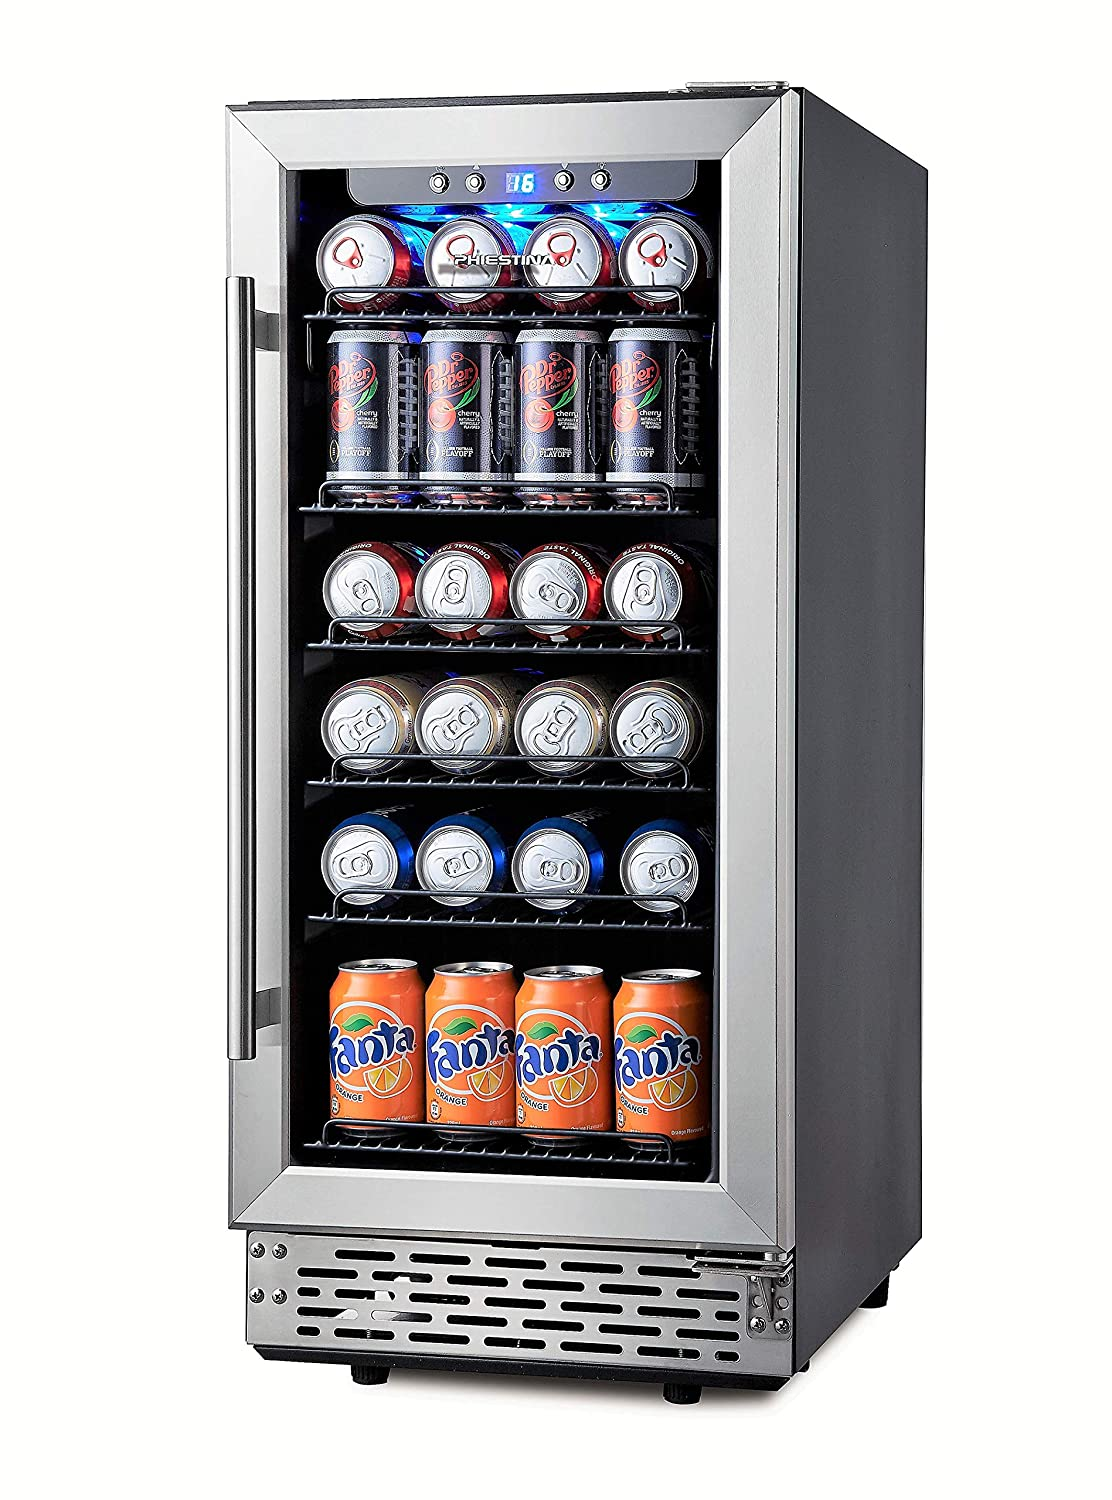 Phiestina 15 Inch Beverage Cooler Refrigerator 96 Can Built-in or Free Standing Beverage Fridge with Glass Door for Soda Beer or Wine Compact Drink Fridge For Home Bar or Office